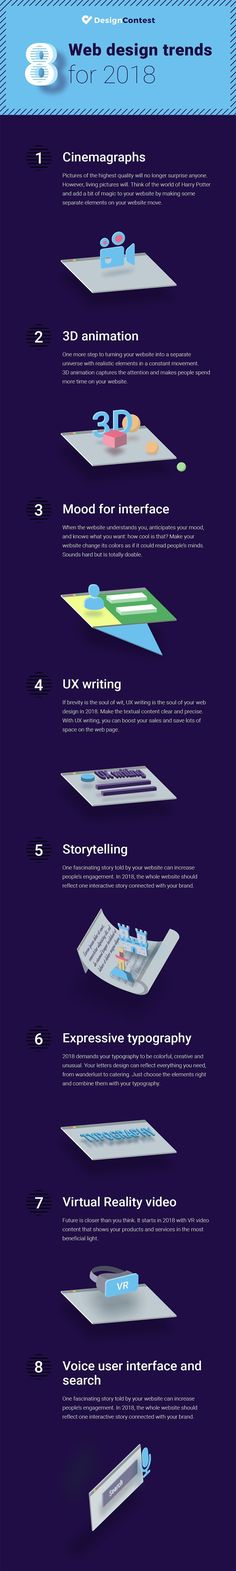 8 Web Design Trends to Help Your Business Stand Out in 2018 [Infographic] #WebMarketingSolutions